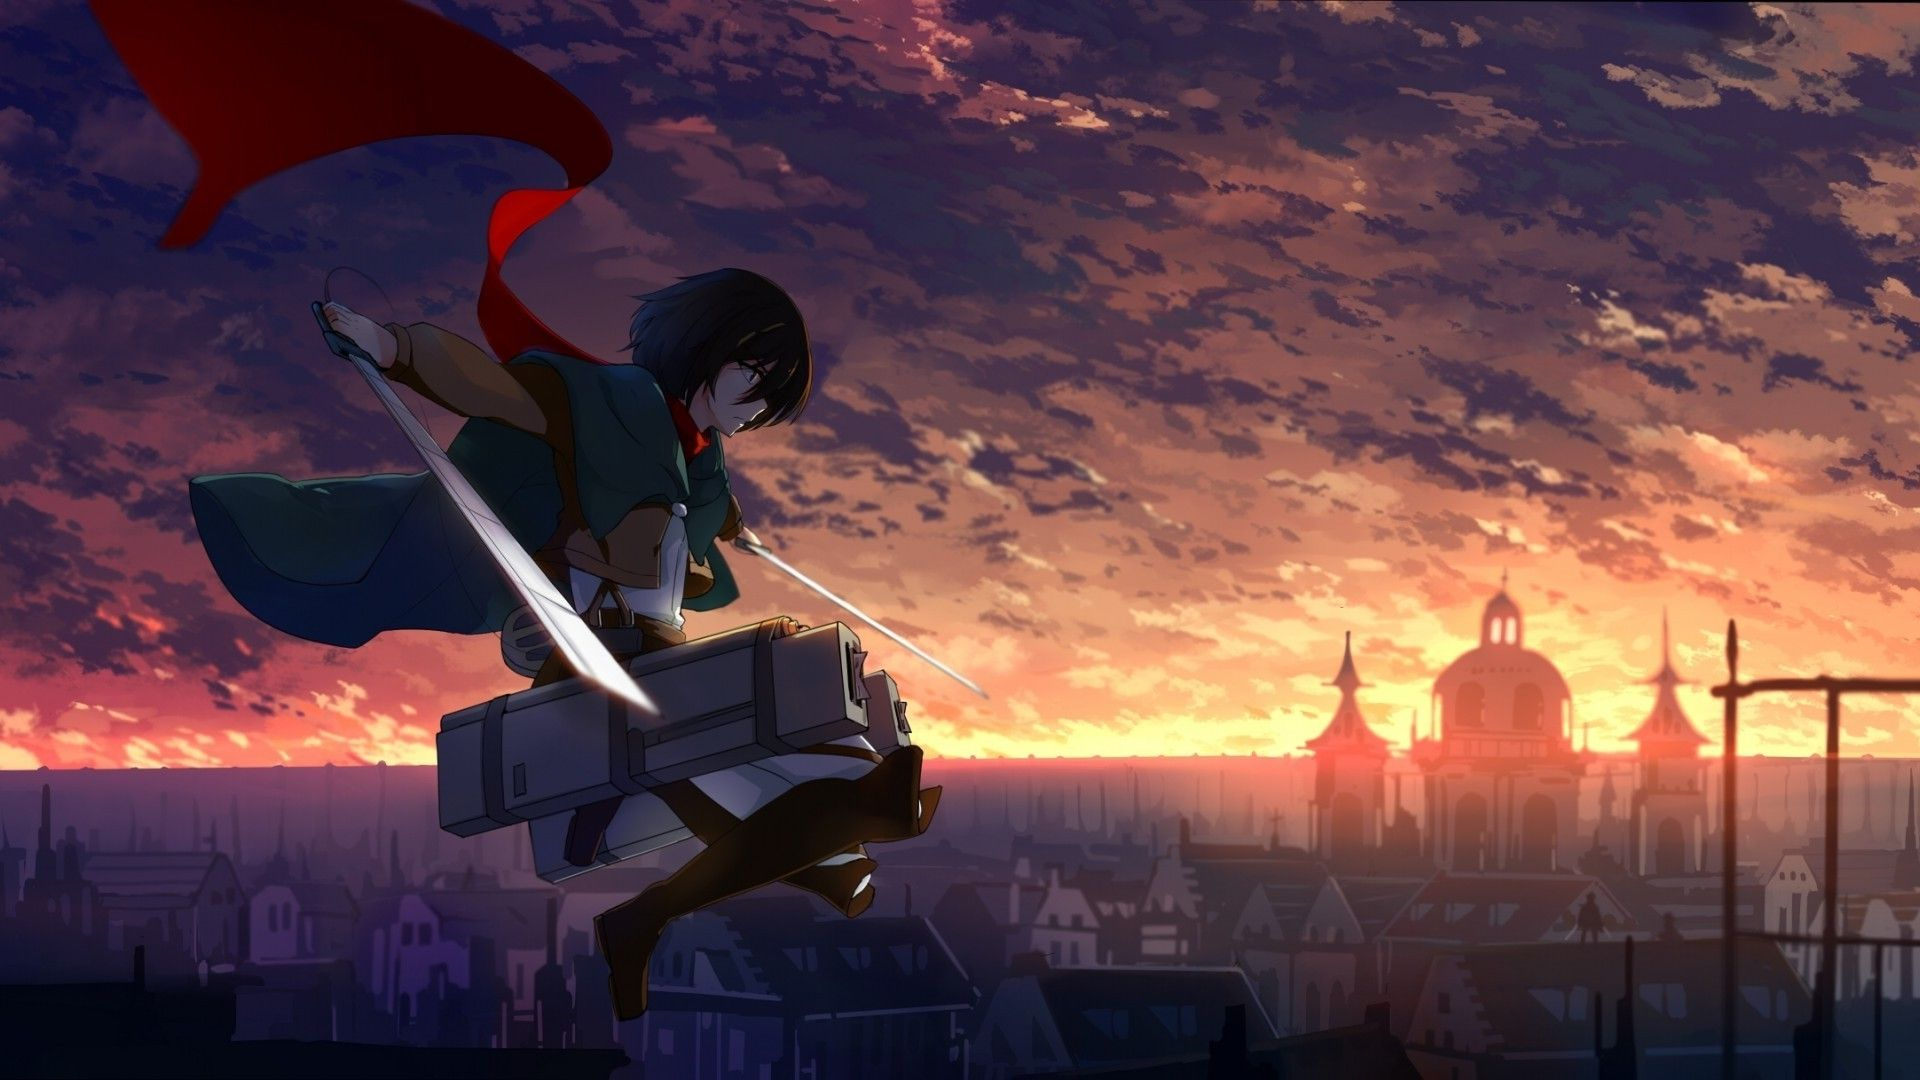 Mikasa Ackerman Wallpaper Sword Art Online Season Mikasa Hd Anime Wallpapers